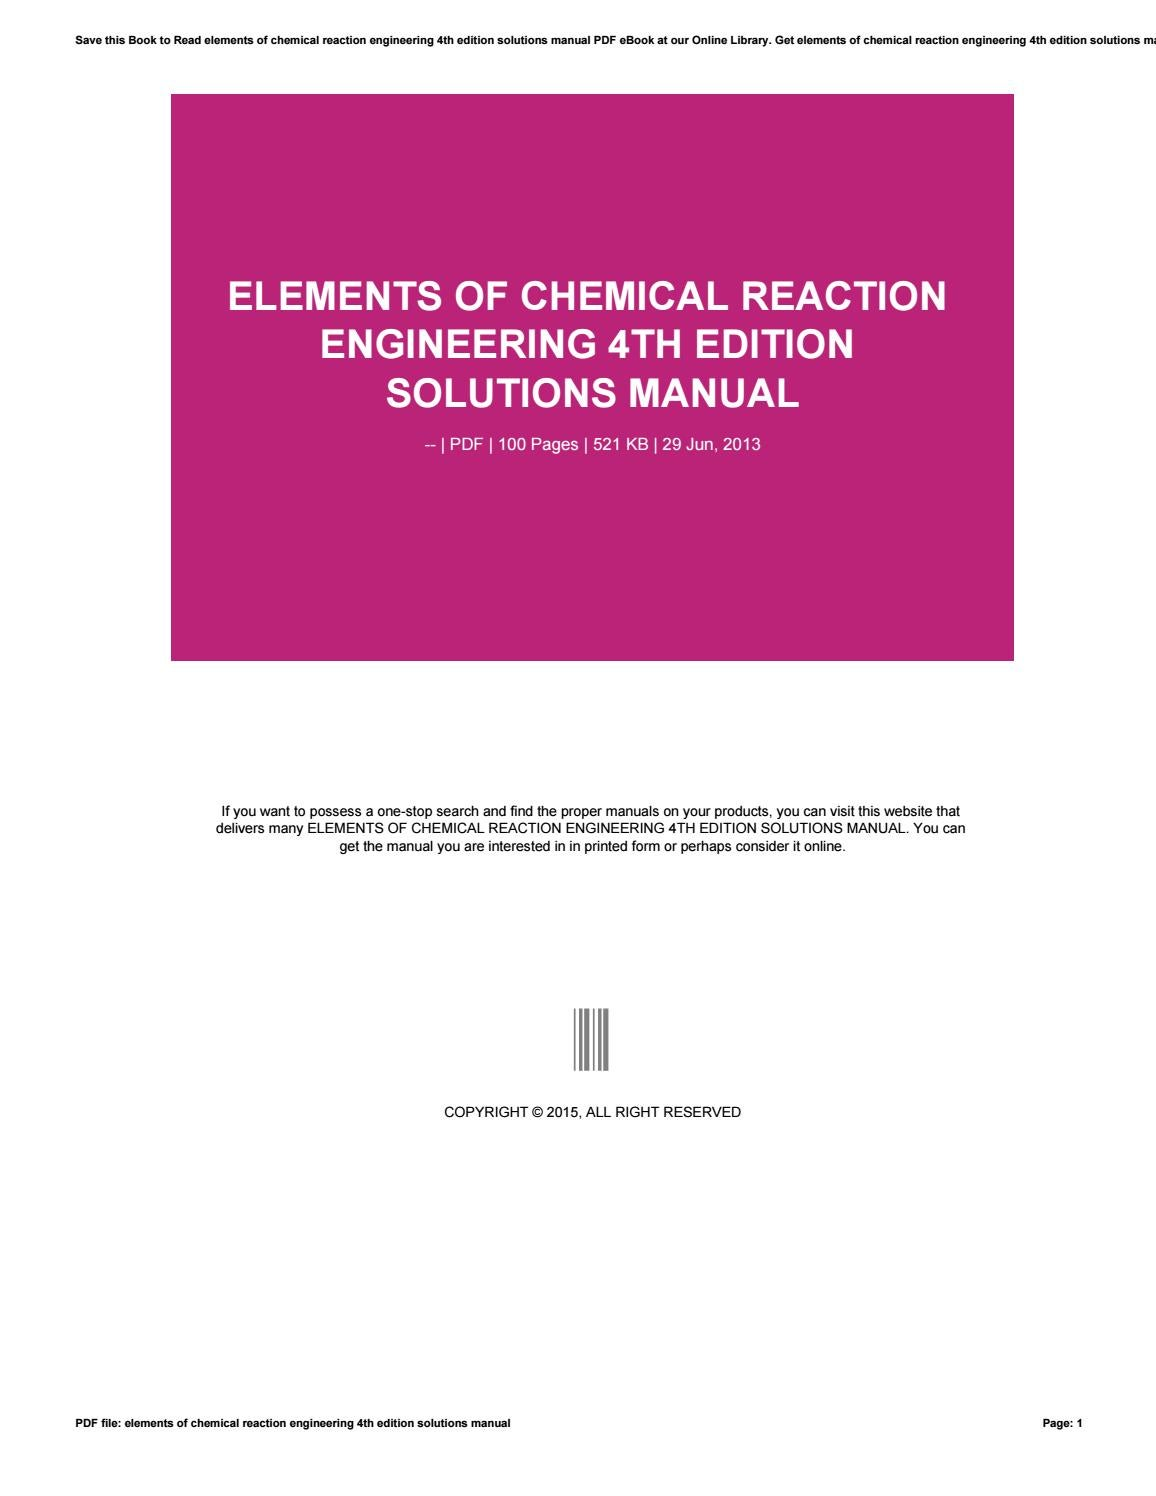 Elements Of Chemical Reaction Engineering 4th Edition Solutions Manual by  hrmndean - issuu